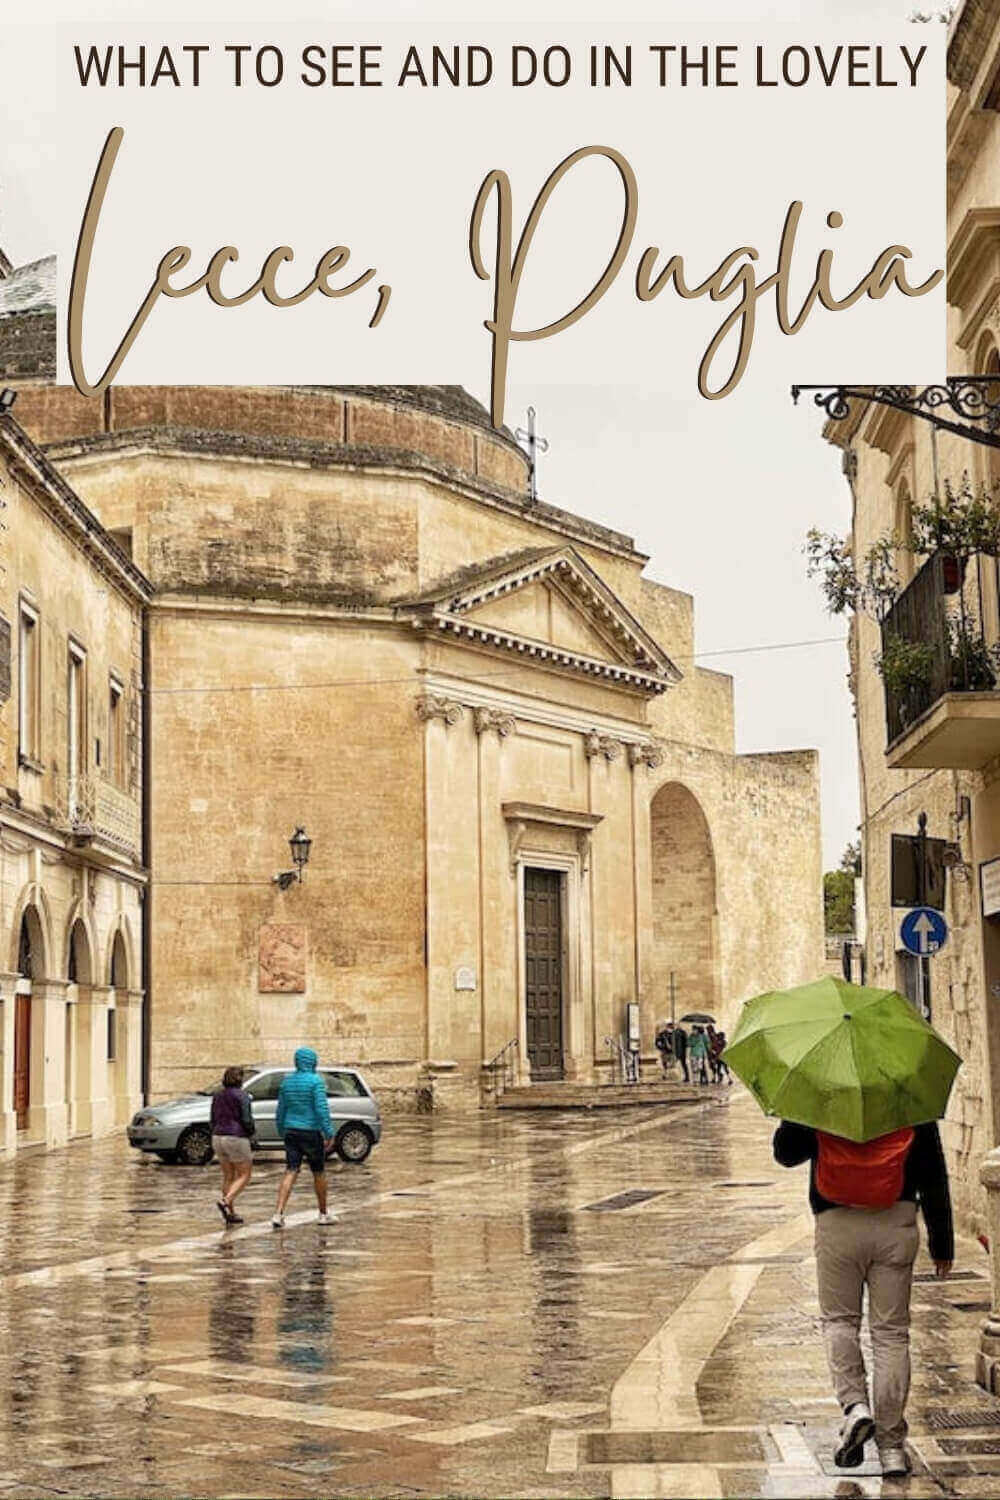 Check out the best things to do in Lecce, Puglia - via @clautavani